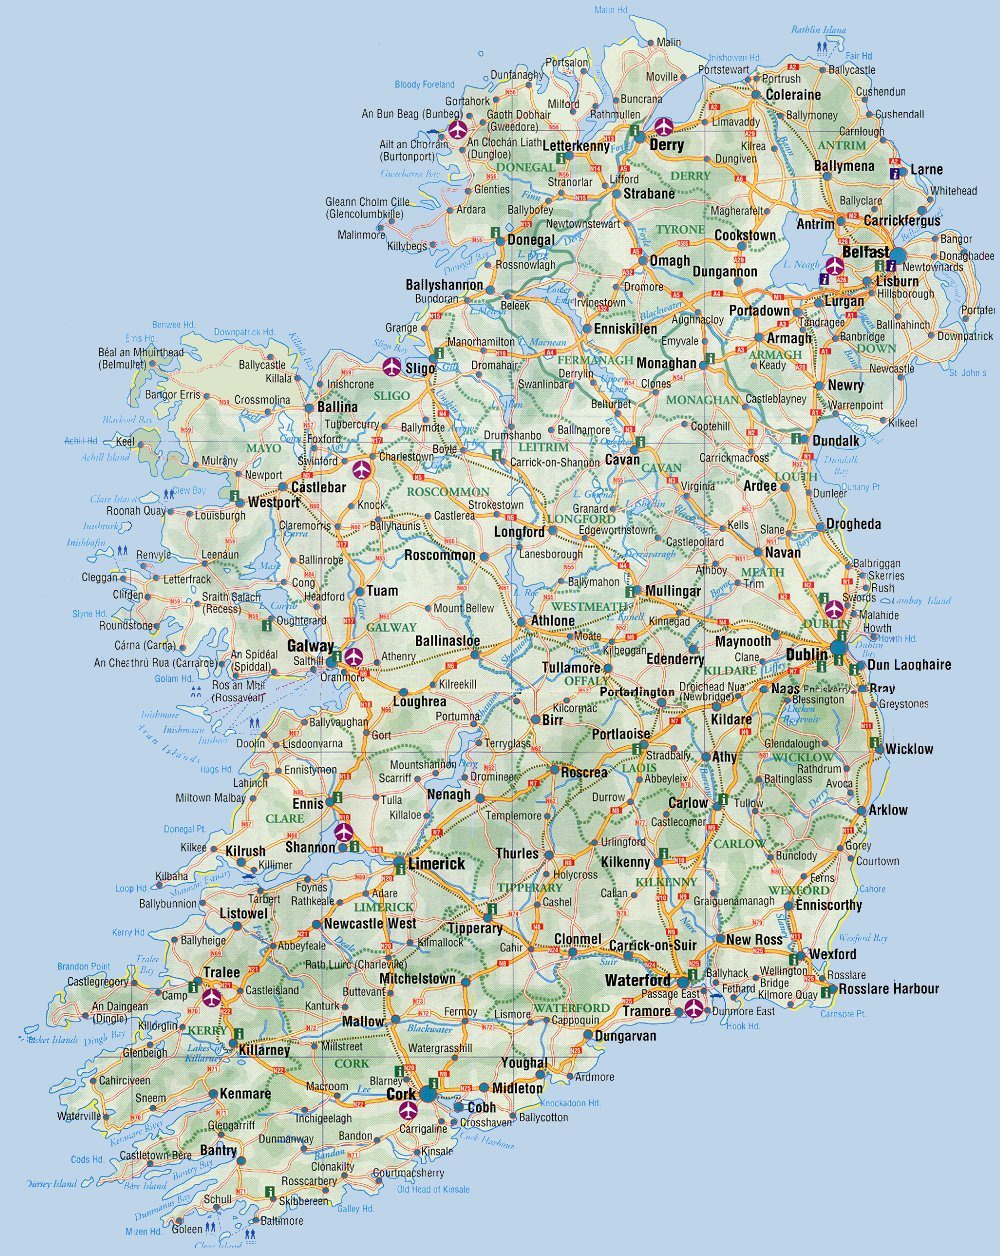 Road map of Ireland Ireland road map Vidianicom Maps of all